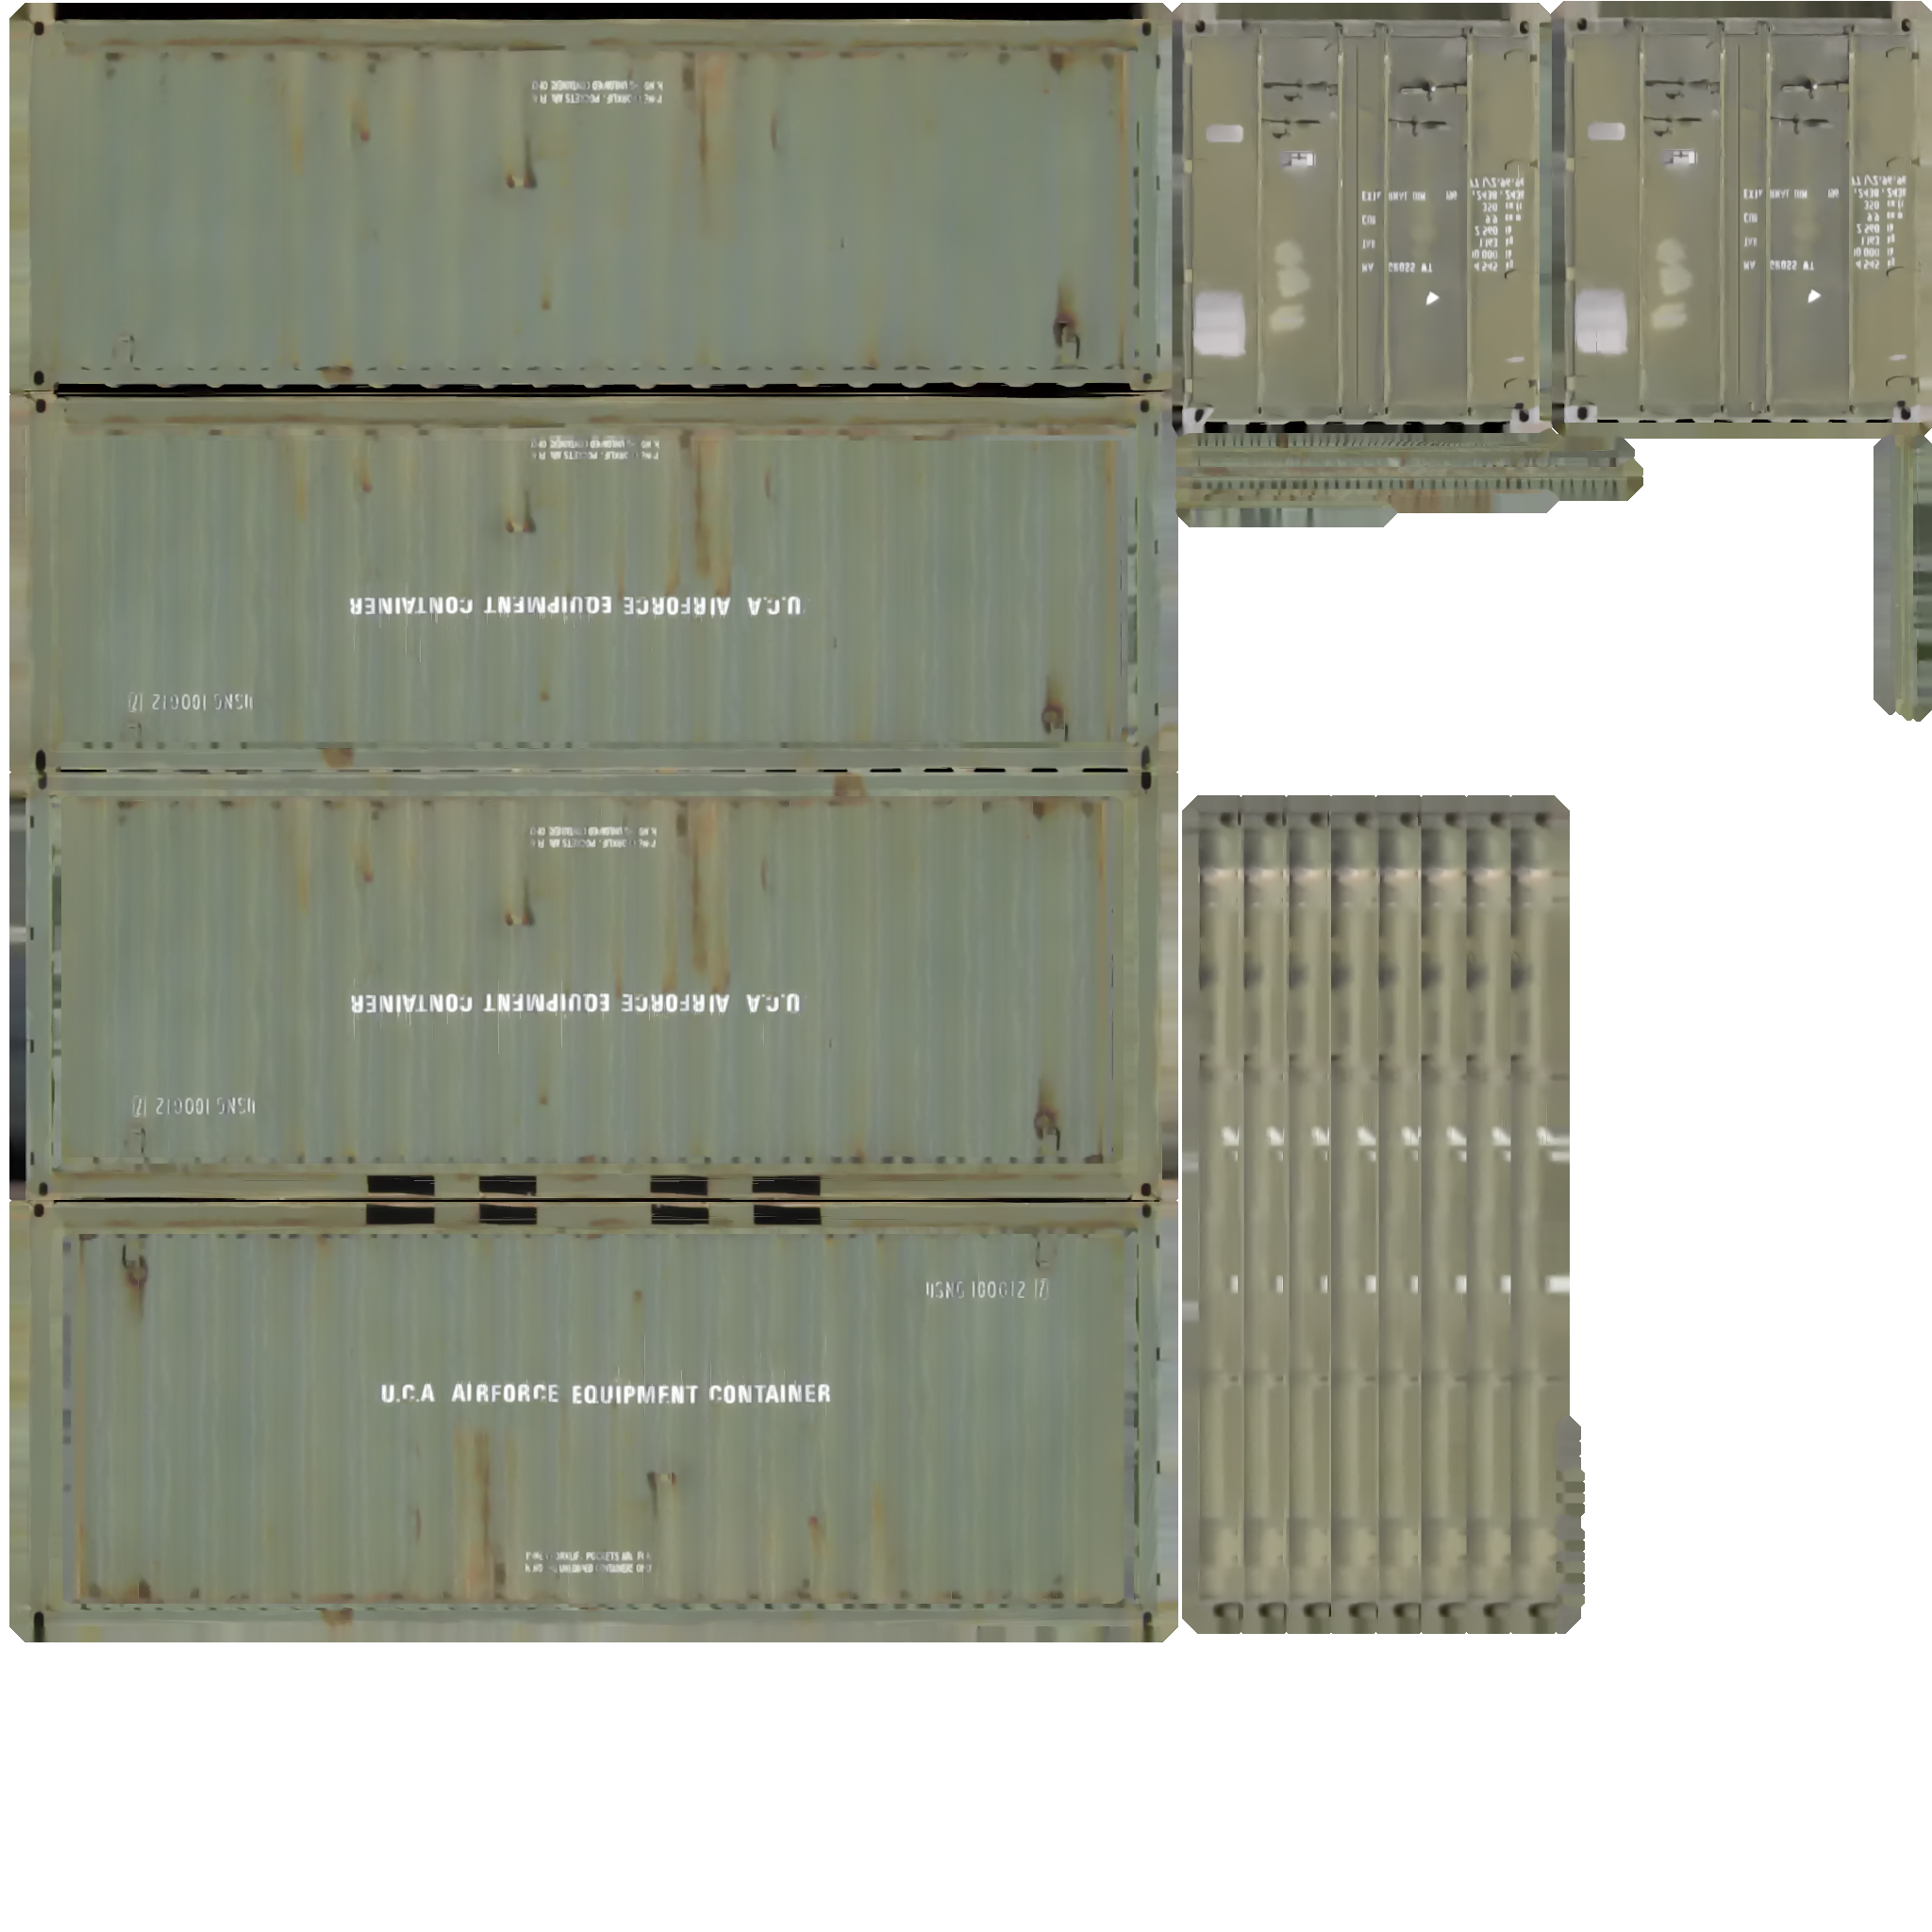 library_custom/stklib/stklib_container_a/container_painted.png